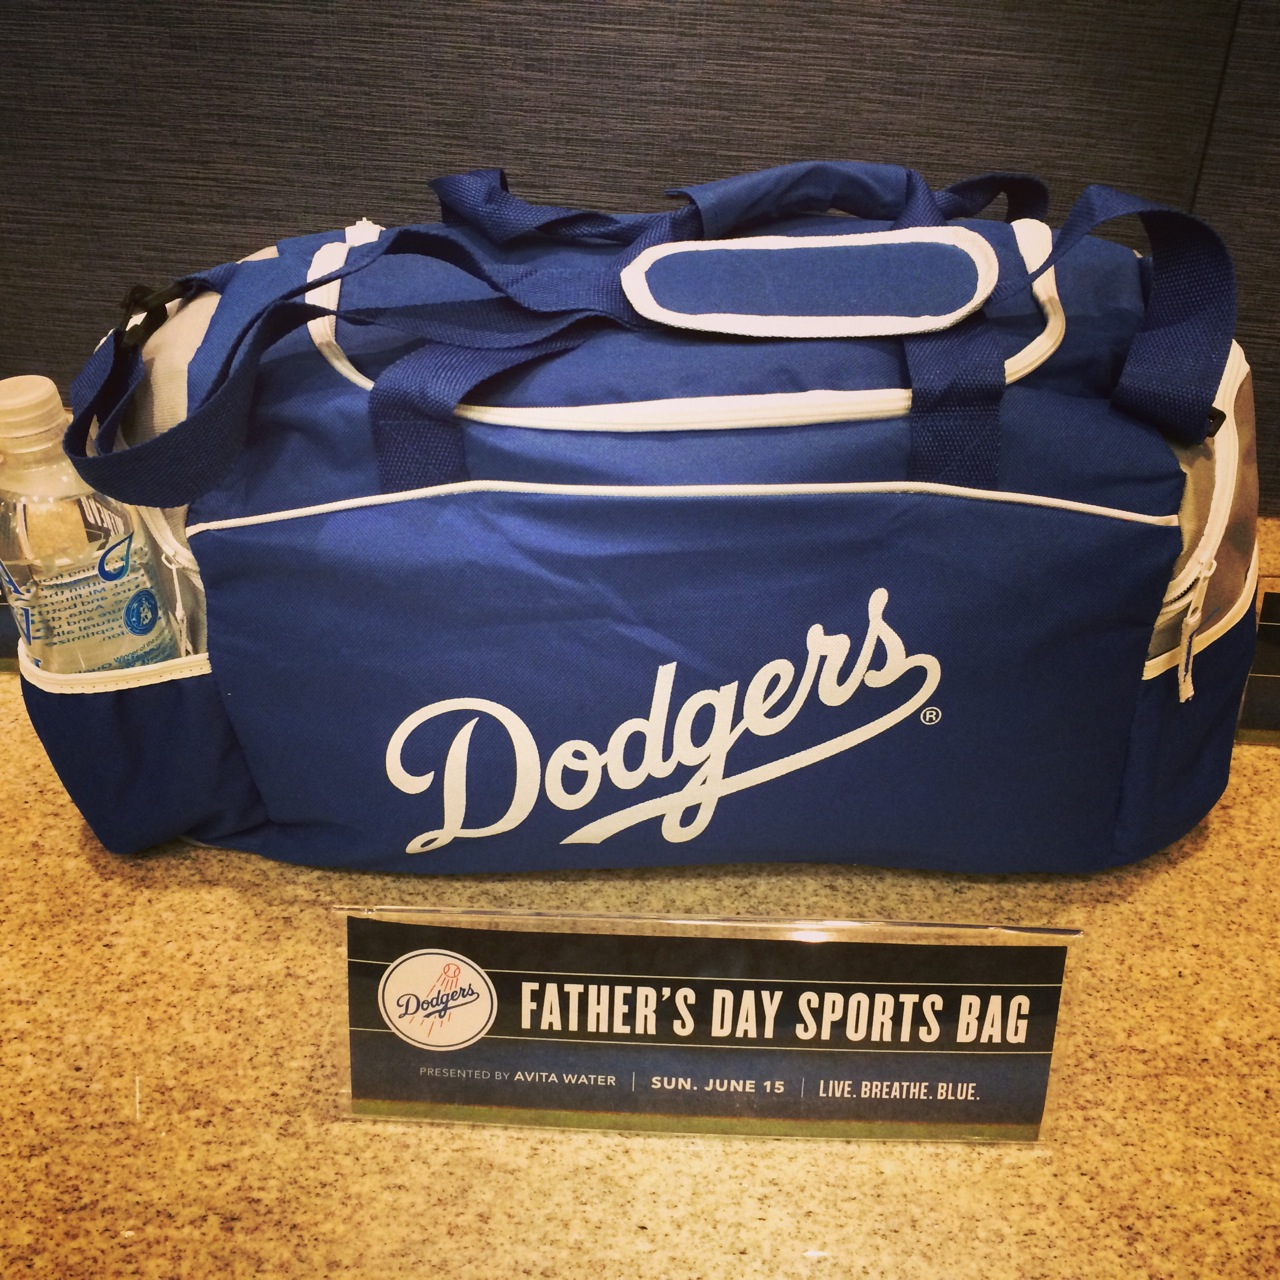 Father'sDayBagDodgers